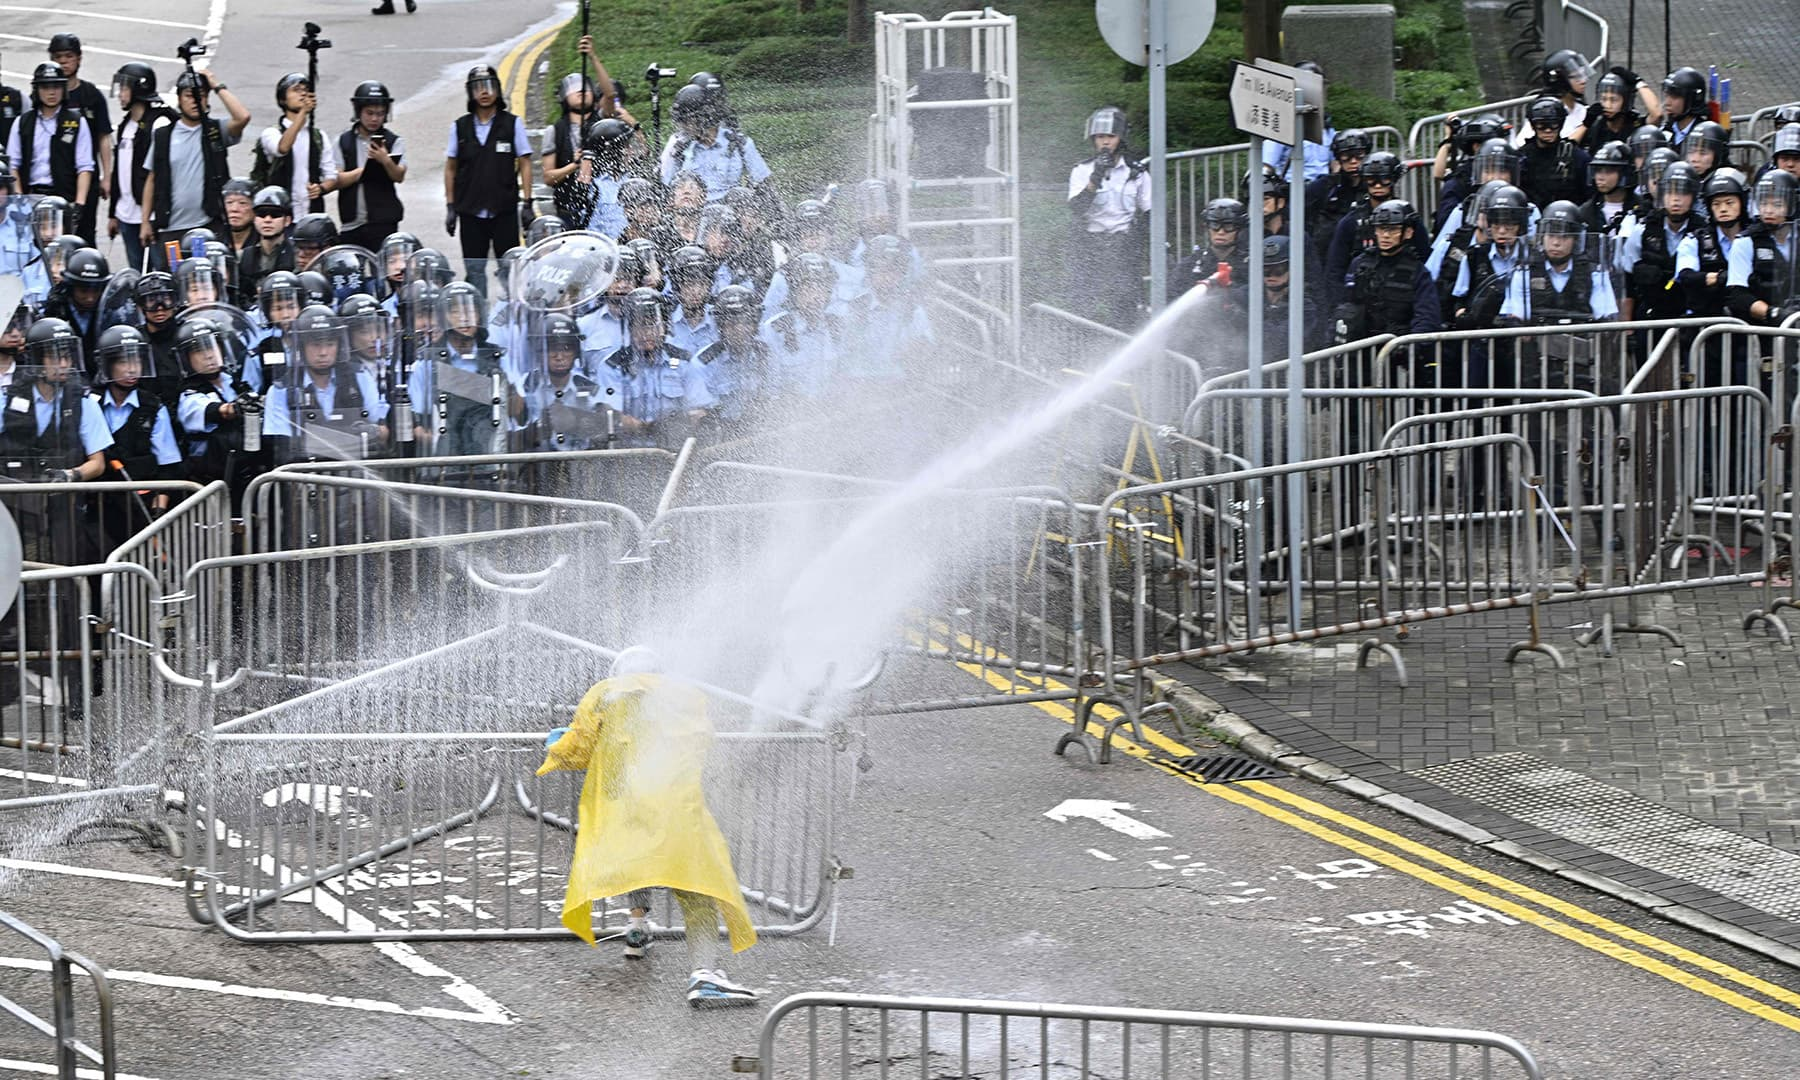 Police officers use pepper spray on a lone protestor near the government headquarters in Hong Kong on June 12. — AFP